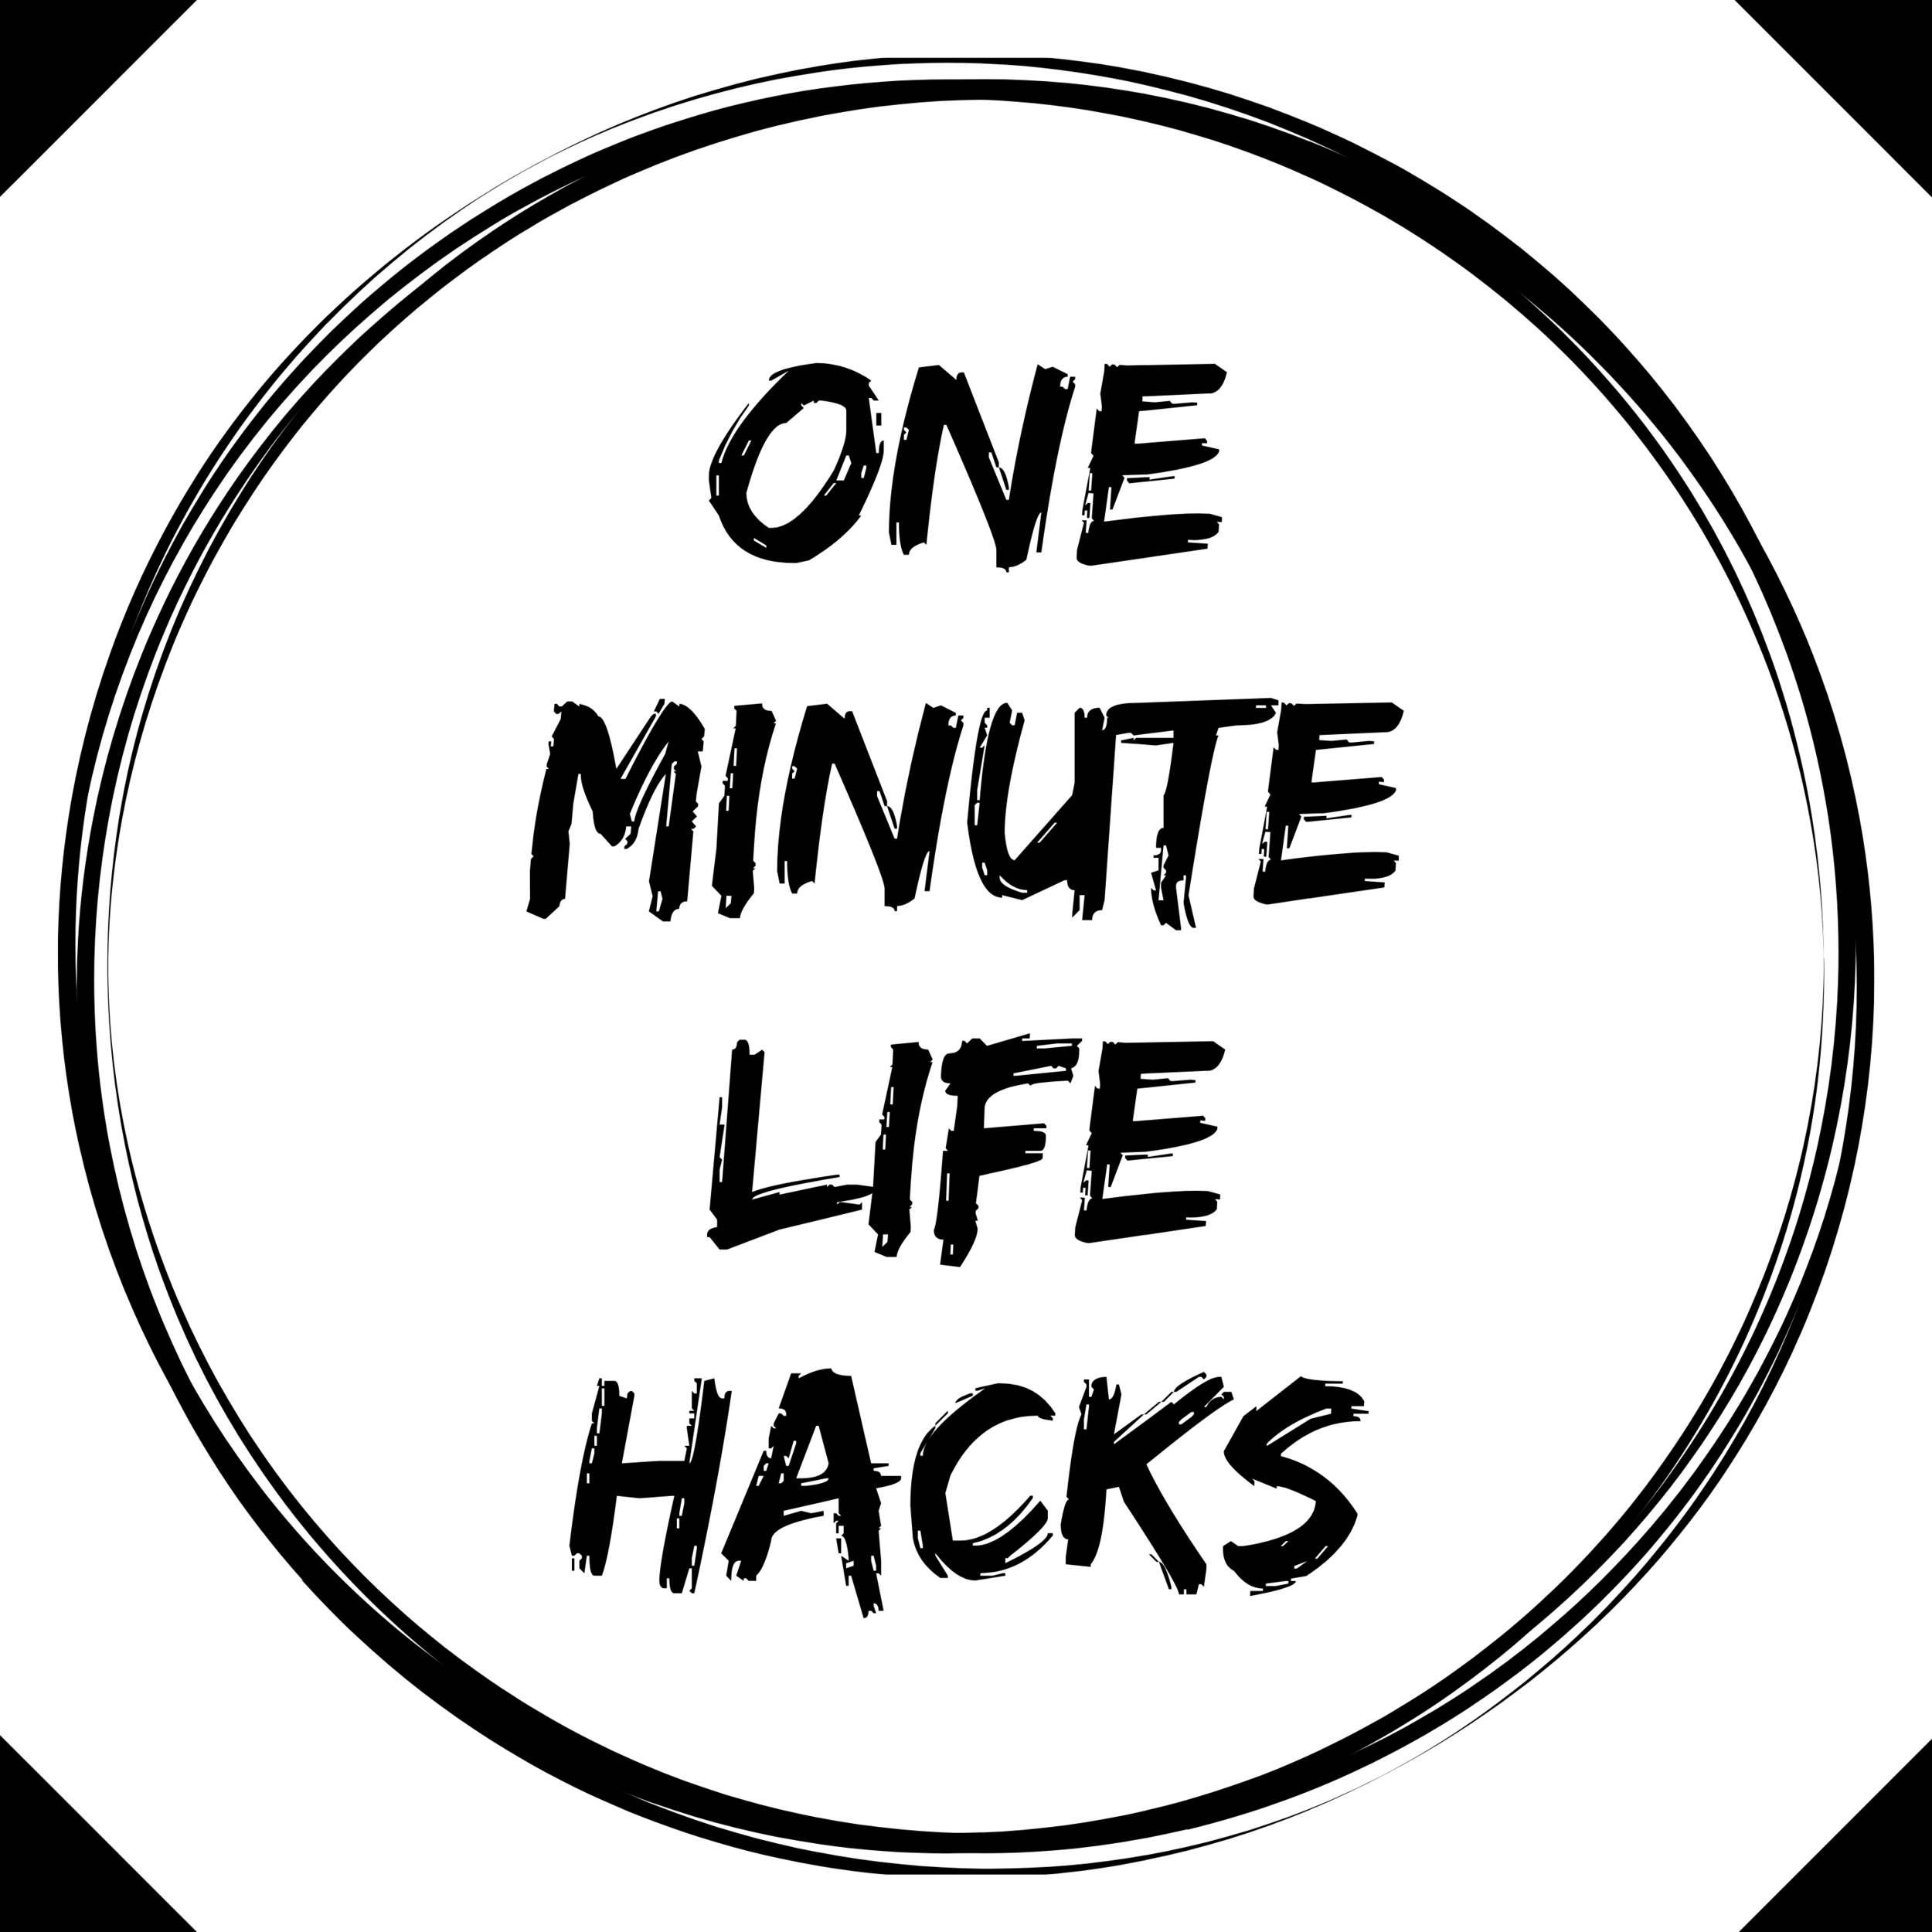 One Minute Life Hacks Image Updated.png